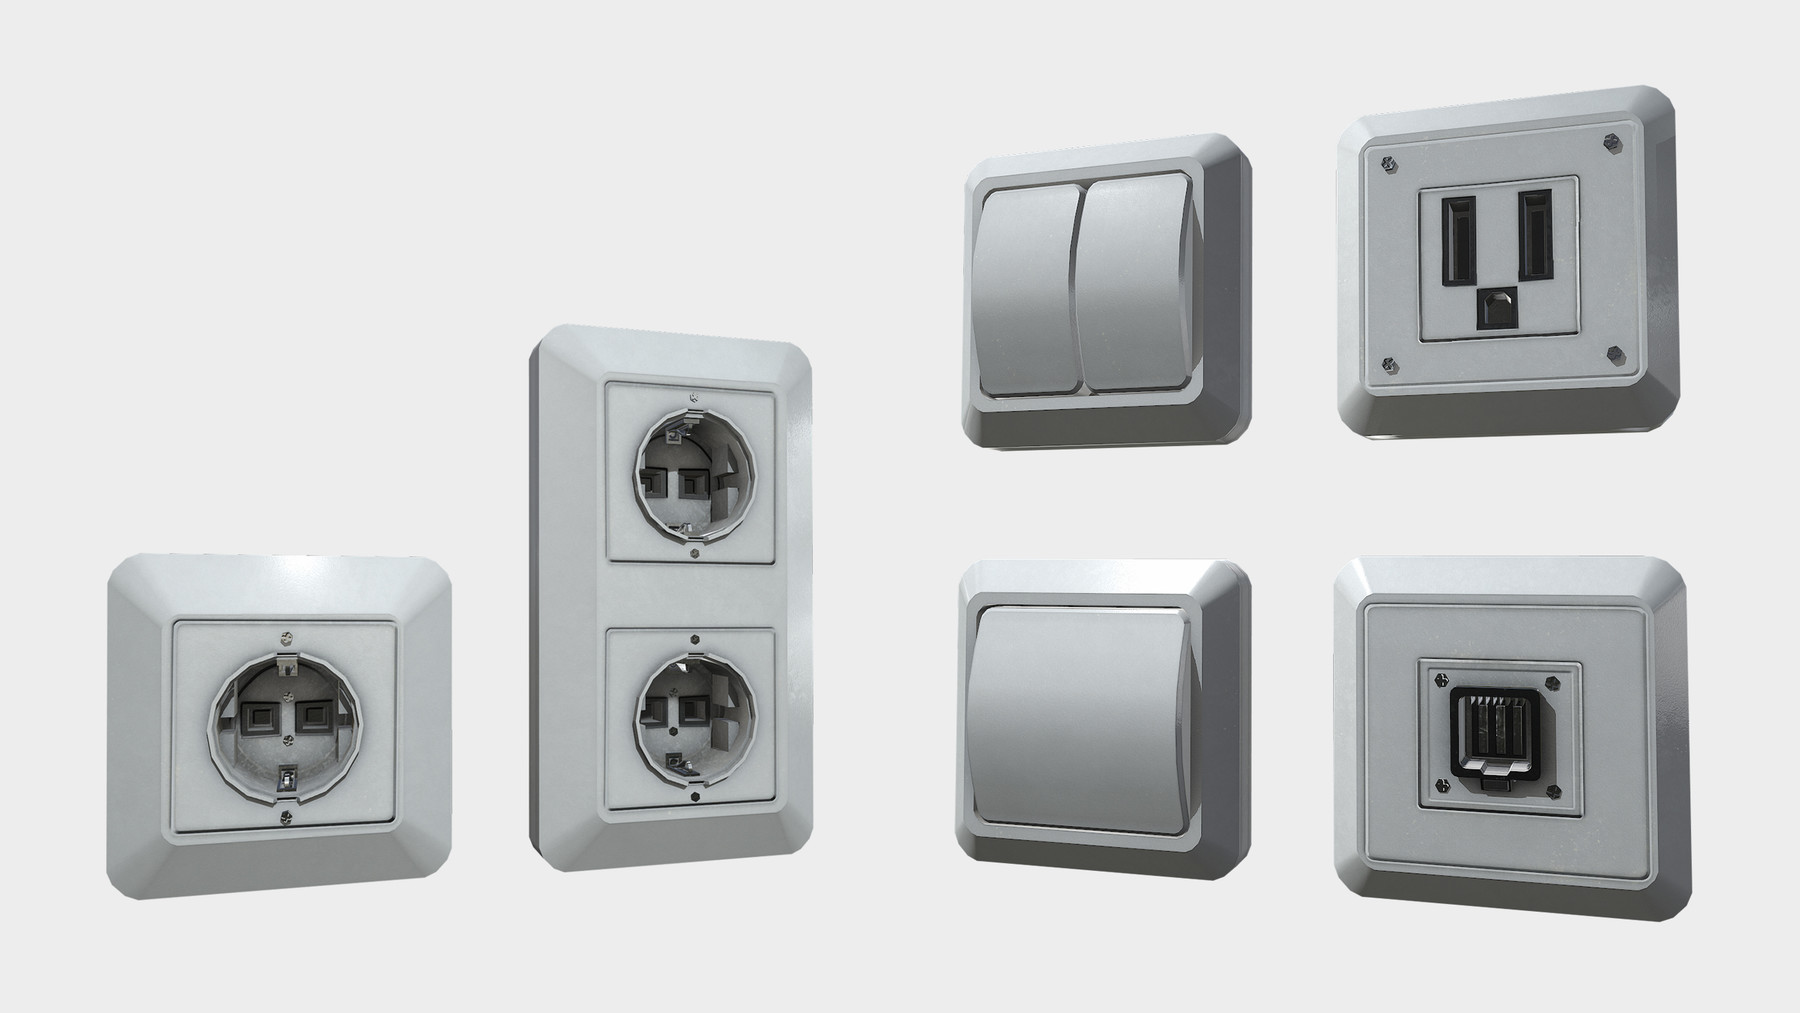 hight resolution of sockets and fuse box pack will help you decorate your interior with a more realistic look